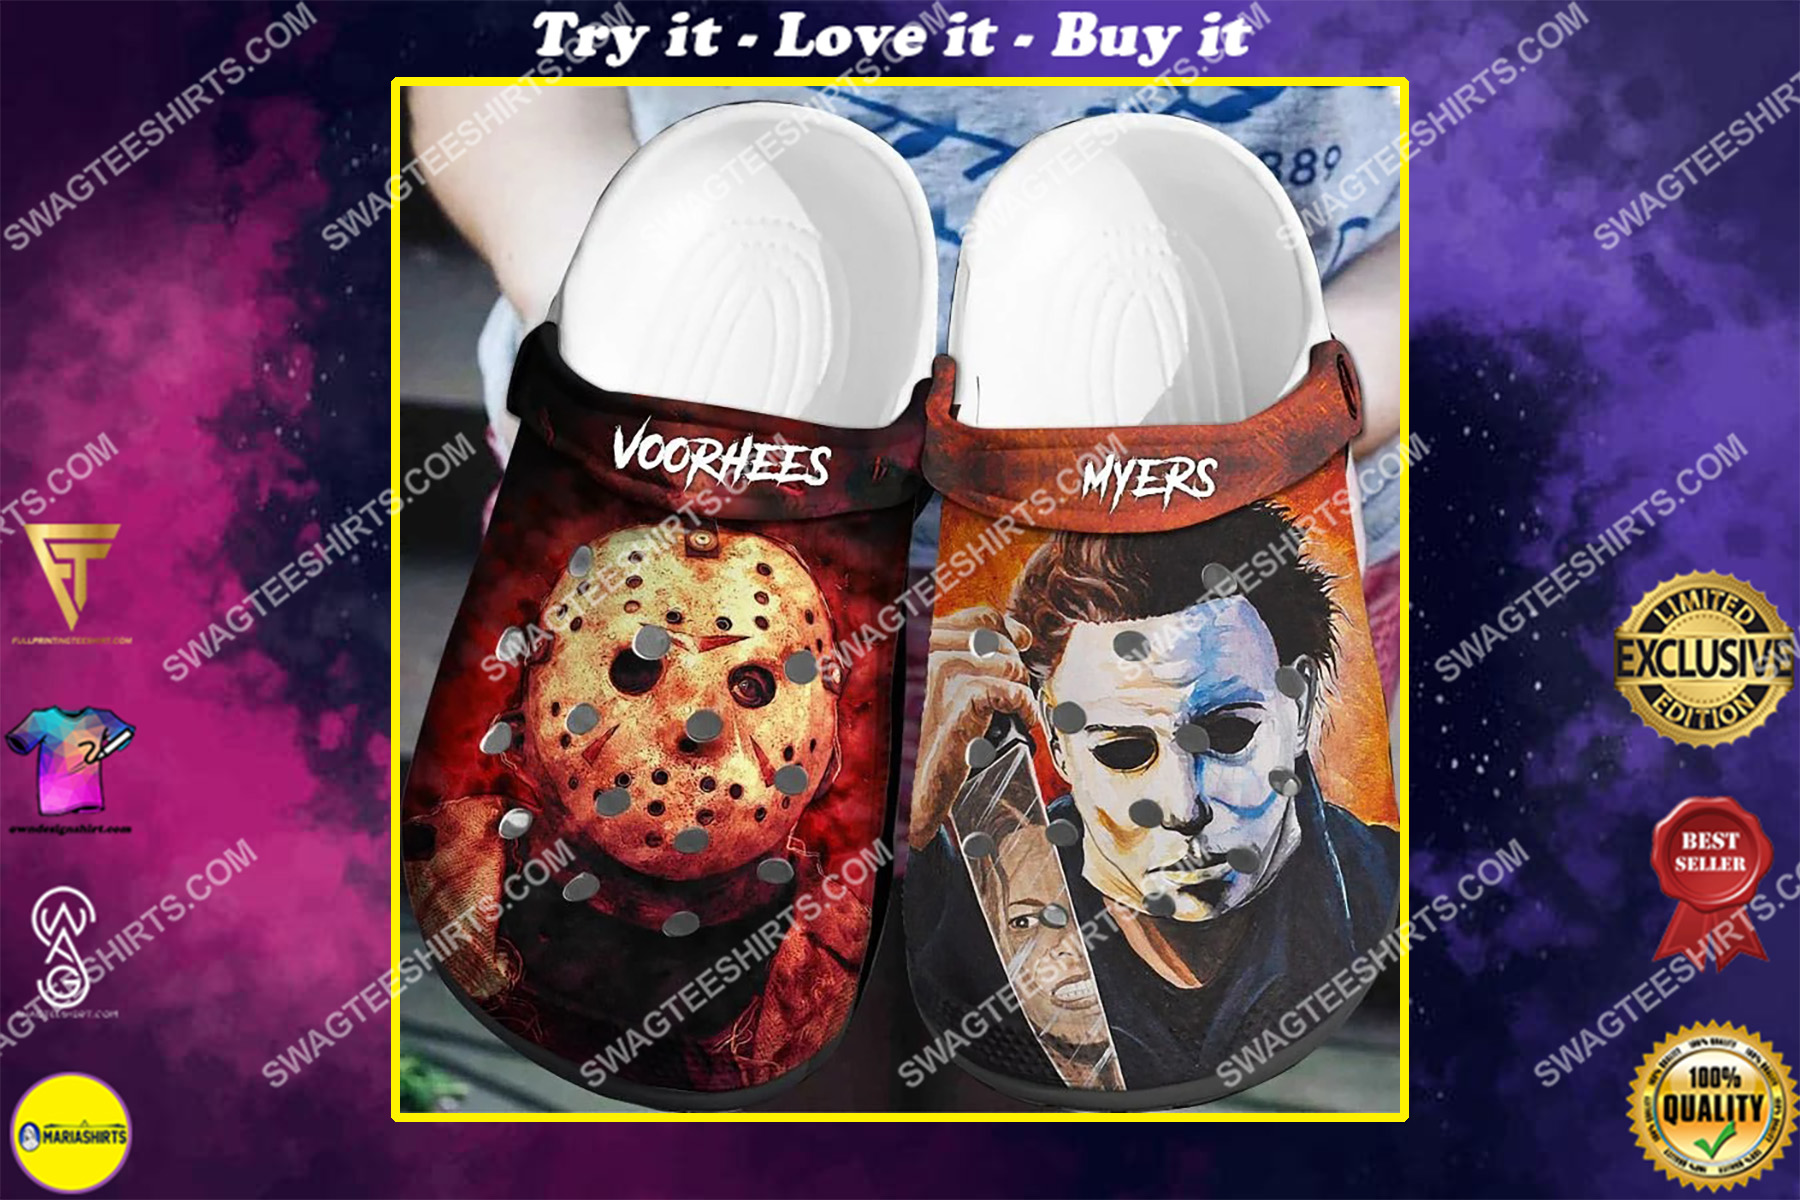 jason voorhees and michael myer all over printed crocs crocband clog